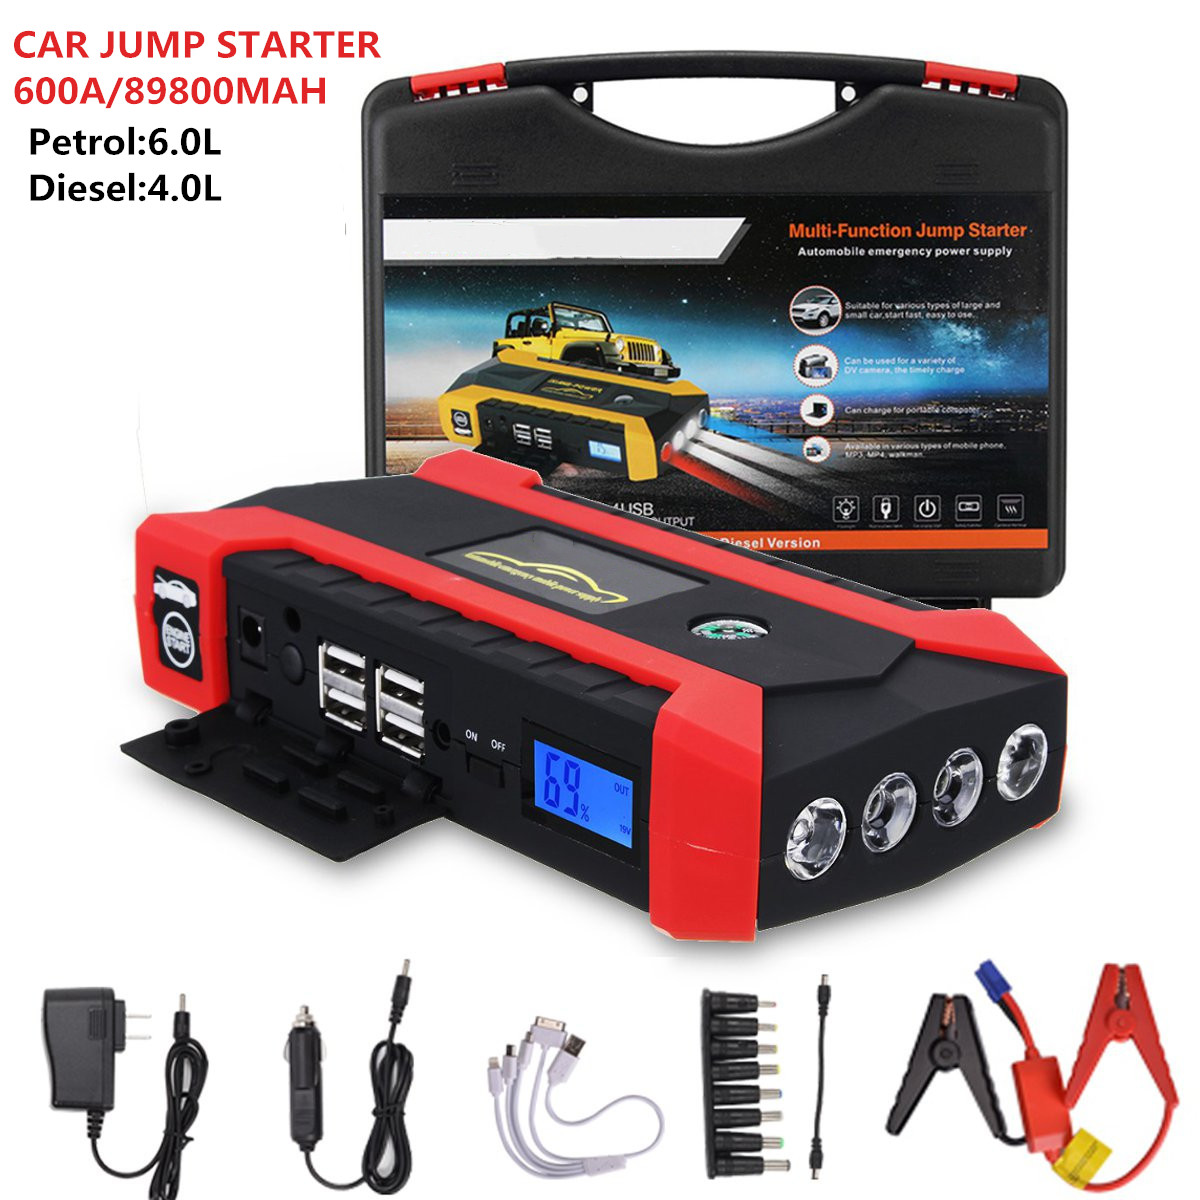 12V 600A Portable Car Jump Starter  Multifunction Auto Car Battery Booster Charger Booster Emergency Power Bank Starting Device12V 600A Portable Car Jump Starter  Multifunction Auto Car Battery Booster Charger Booster Emergency Power Bank Starting Device